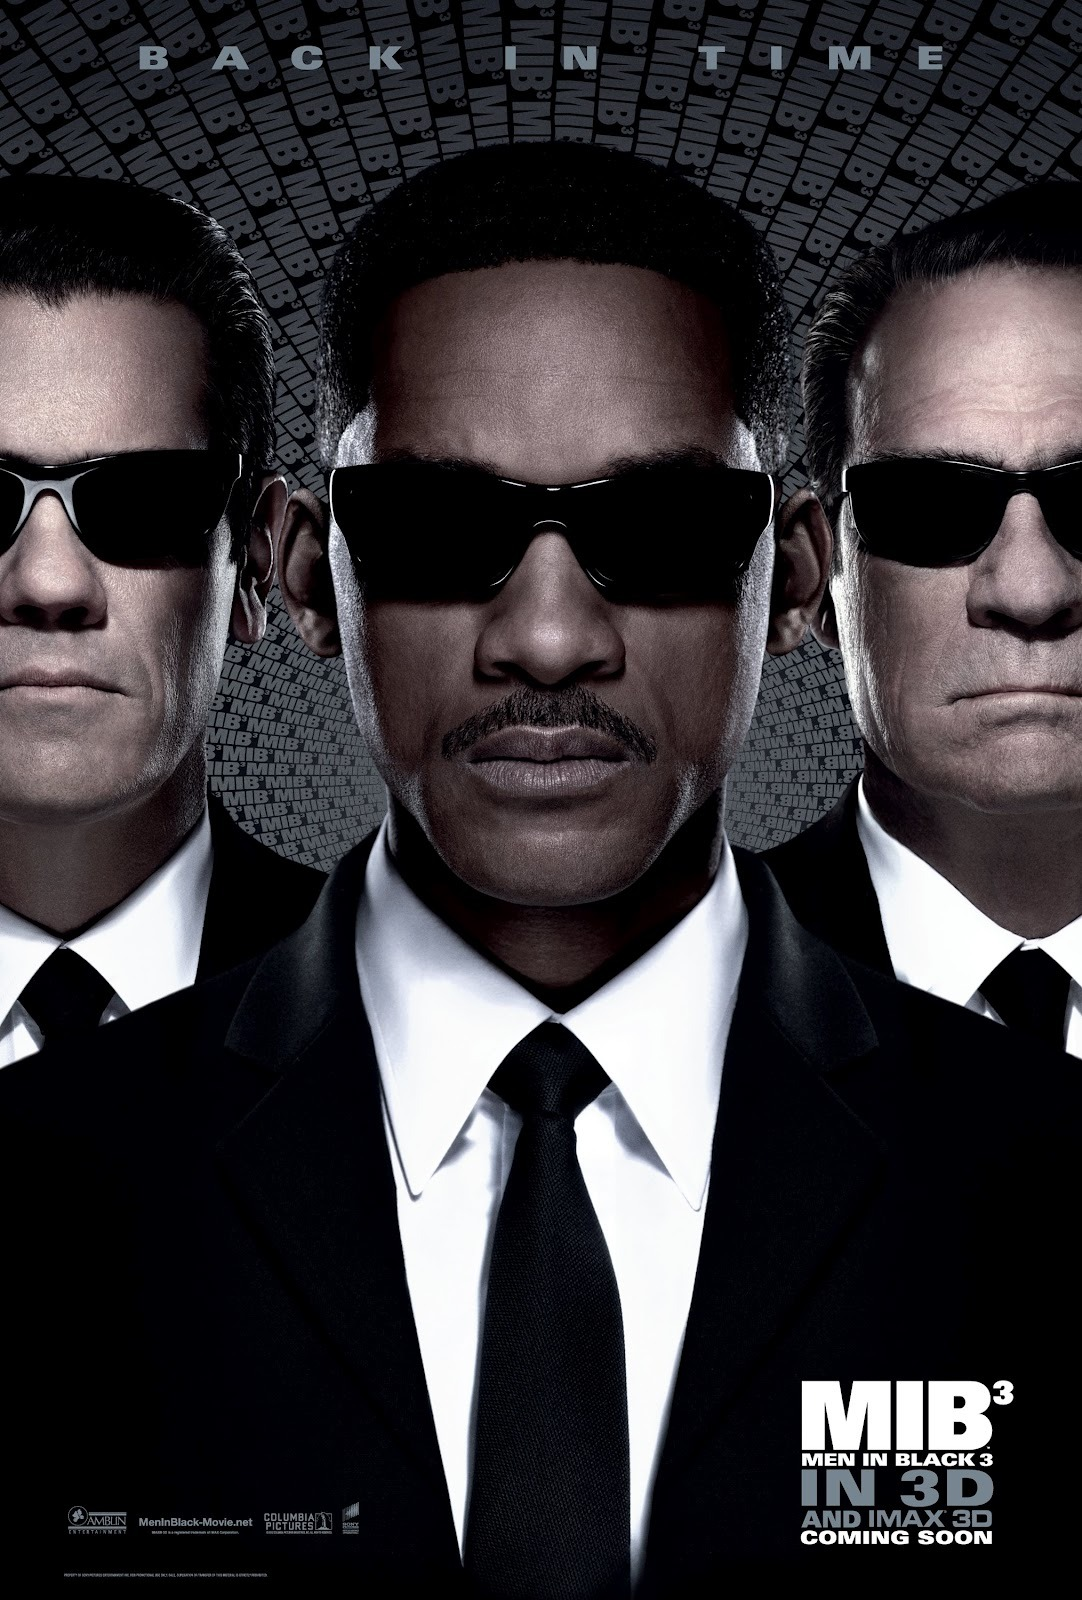 Movies I've Seen in 2012 131.  Men in Black 3 (2012) Starring:  Will Smith, Josh Brolin, Tommy Lee Jones Director:  Barry Sonnenfeld Rating:  ★★★★/5